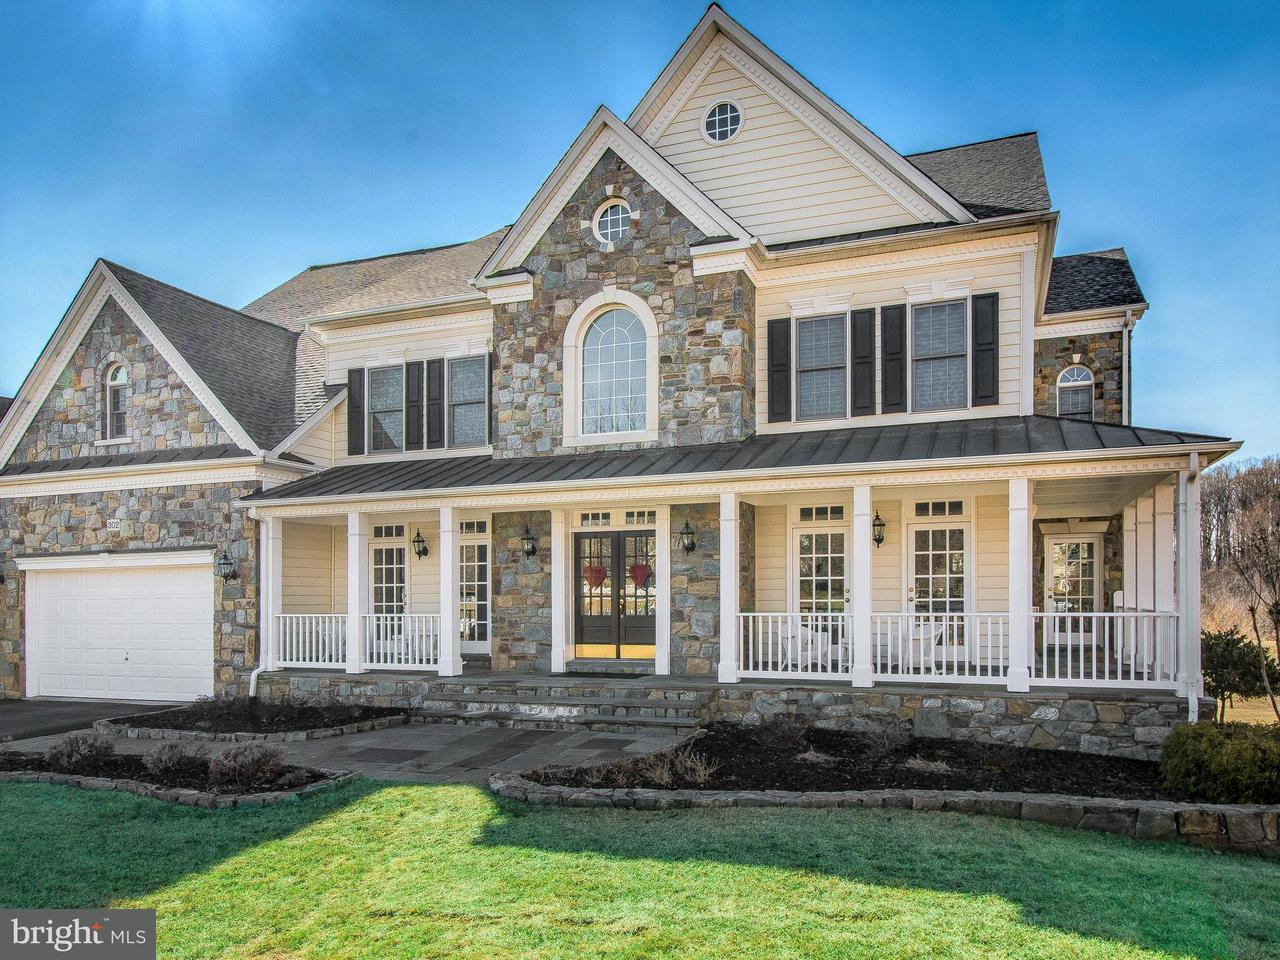 Single Family Home for Sale at 302 Macs Farm Court 302 Macs Farm Court Silver Spring, Maryland 20905 United States